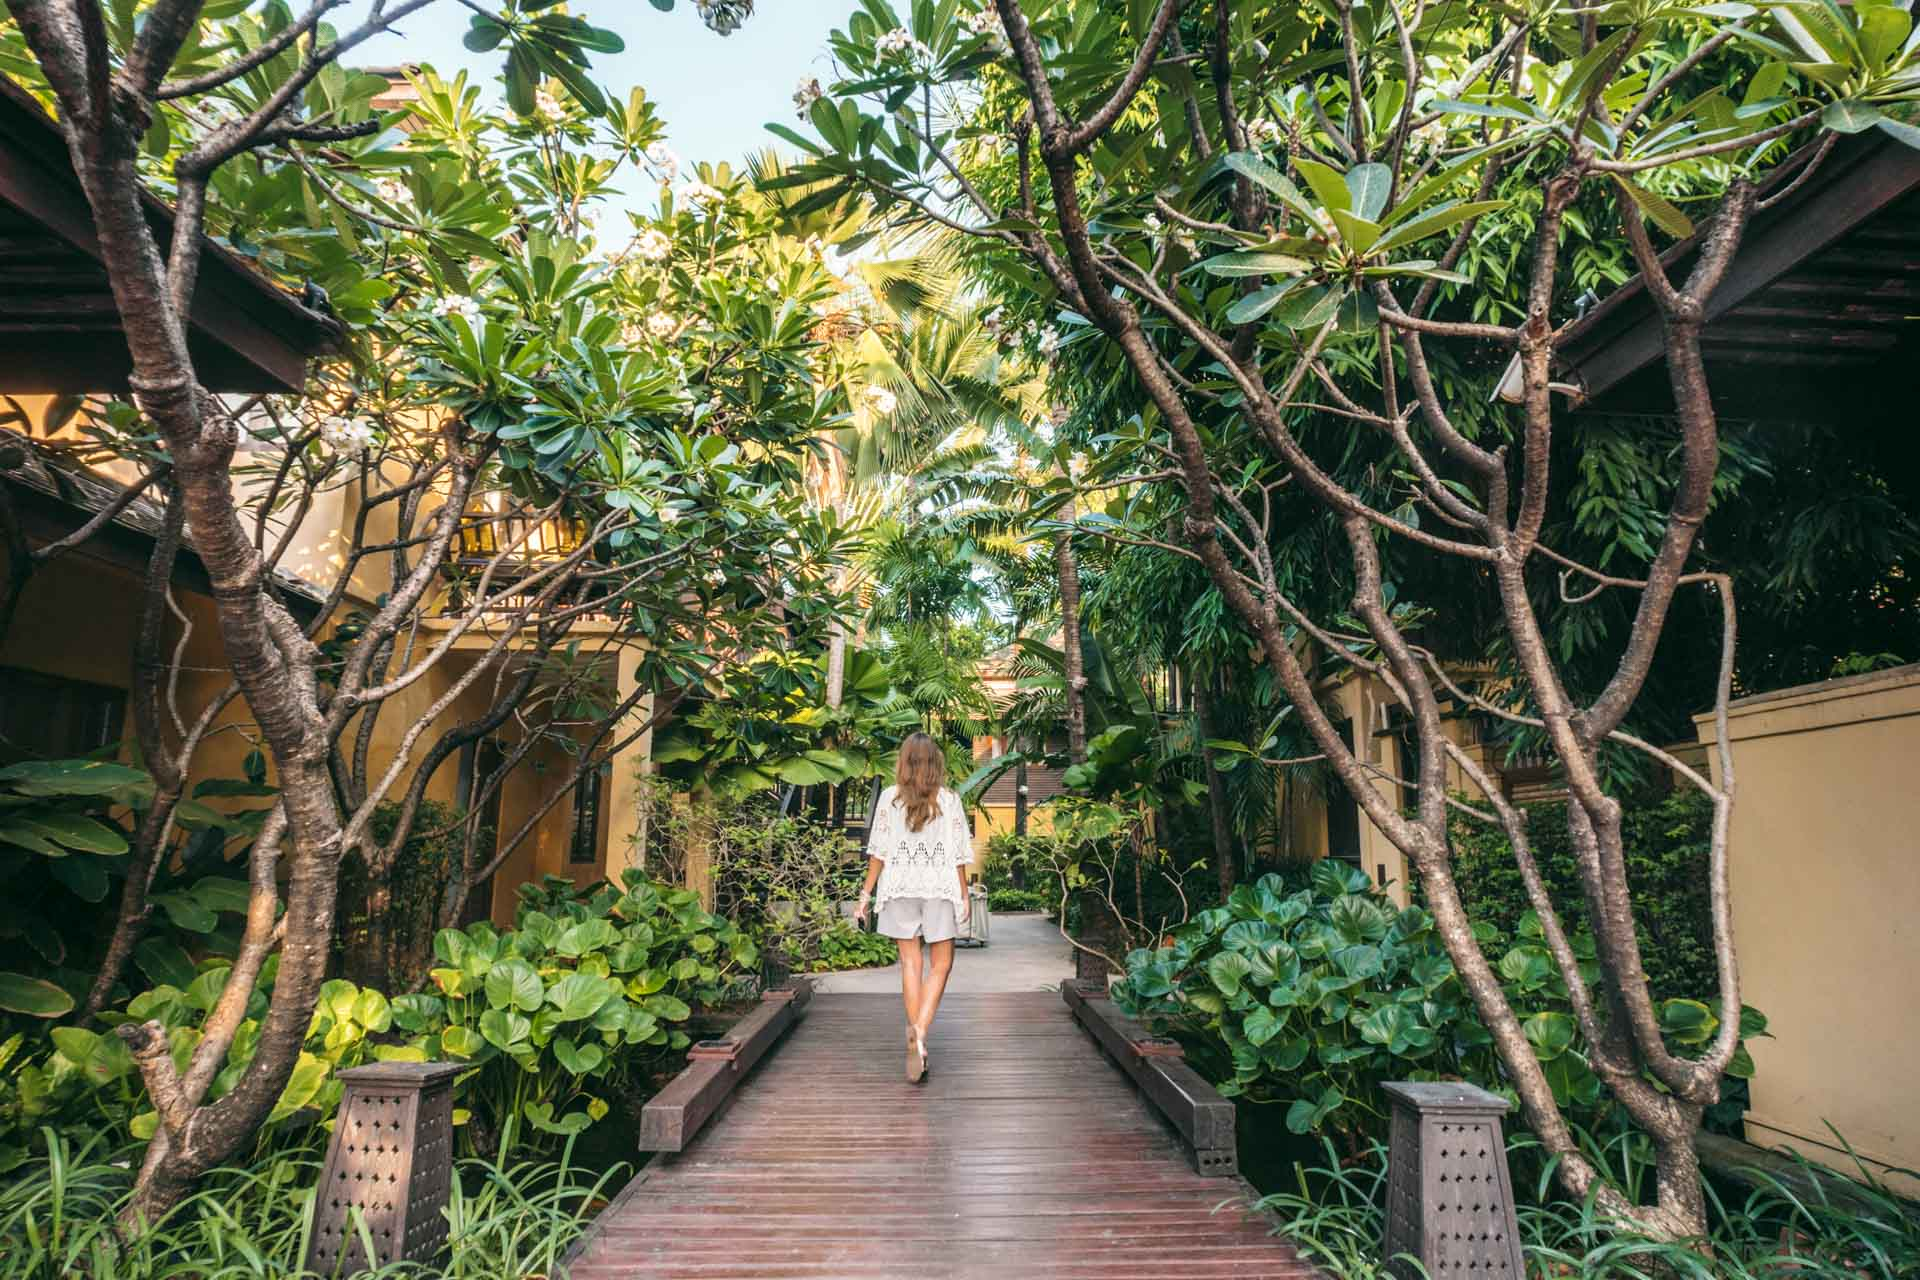 Review of Buri Rasa Village on Koh Samui: Tropical luxury in the heart of Chaweng